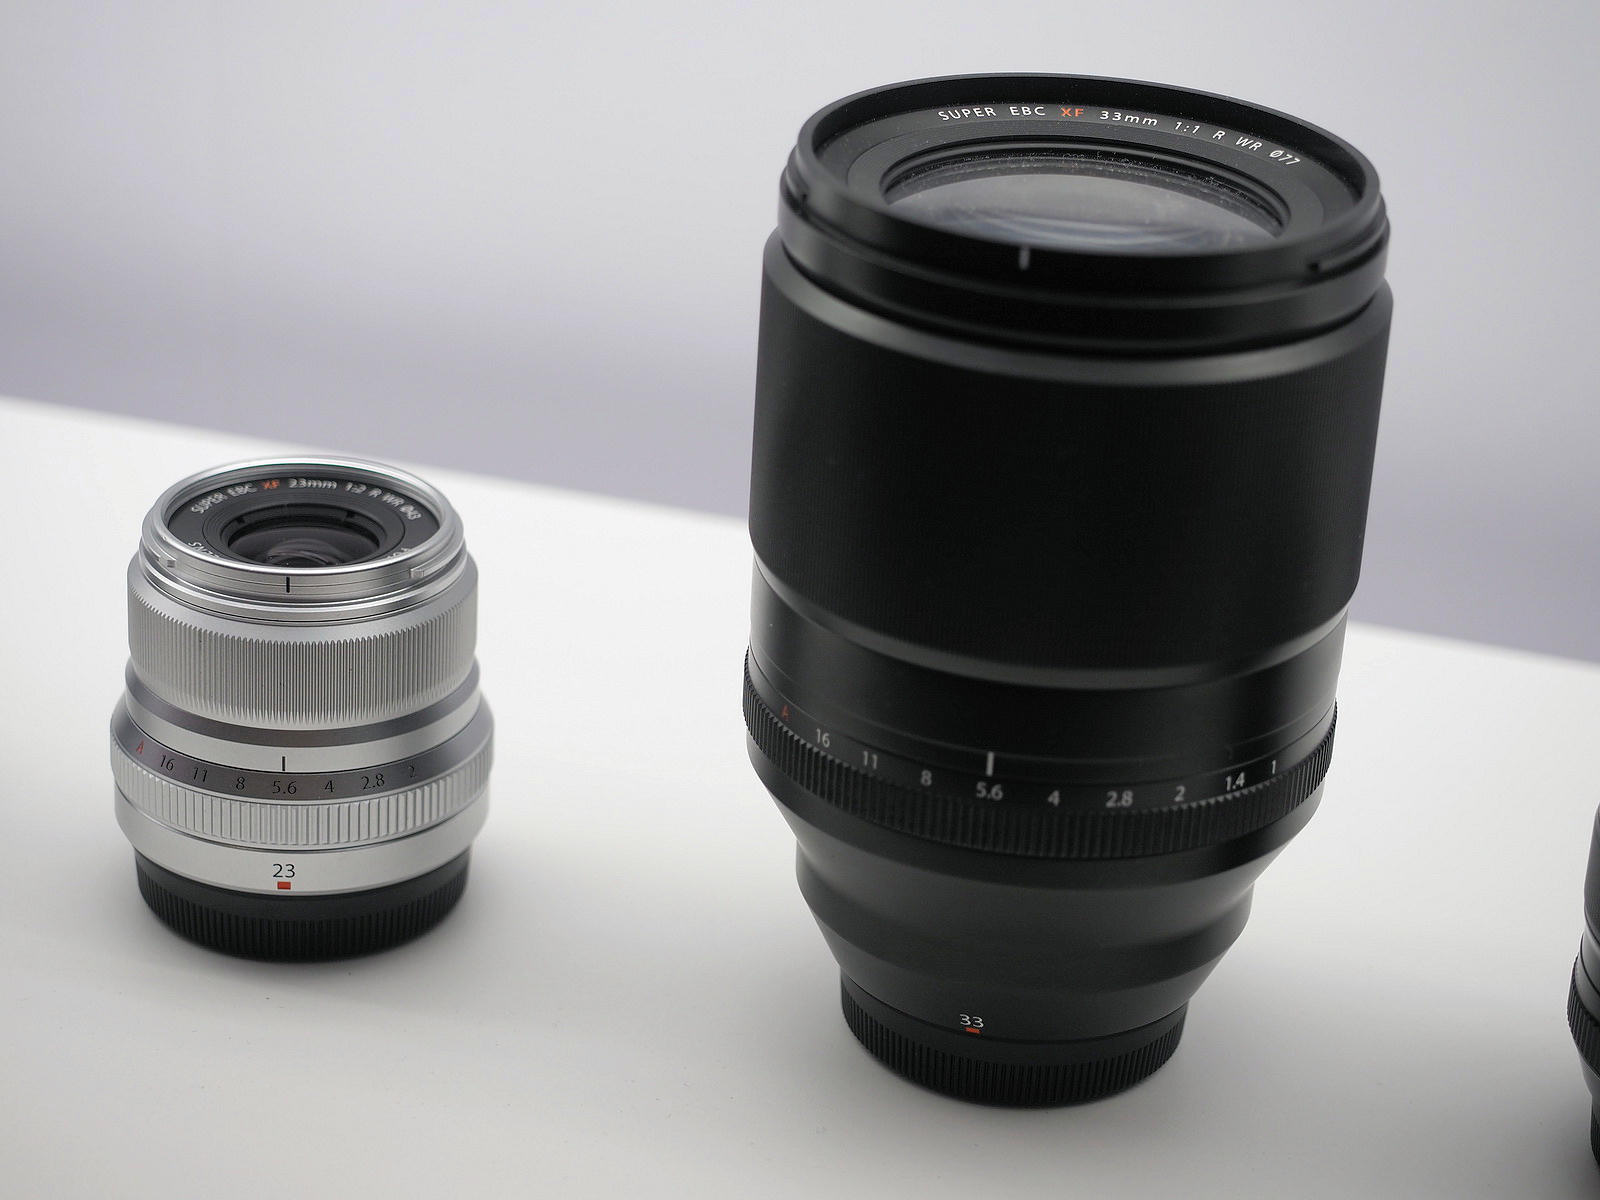 2019 CP+ show report: the Fuji Fujinon XF 33mm f/1 R WR lens